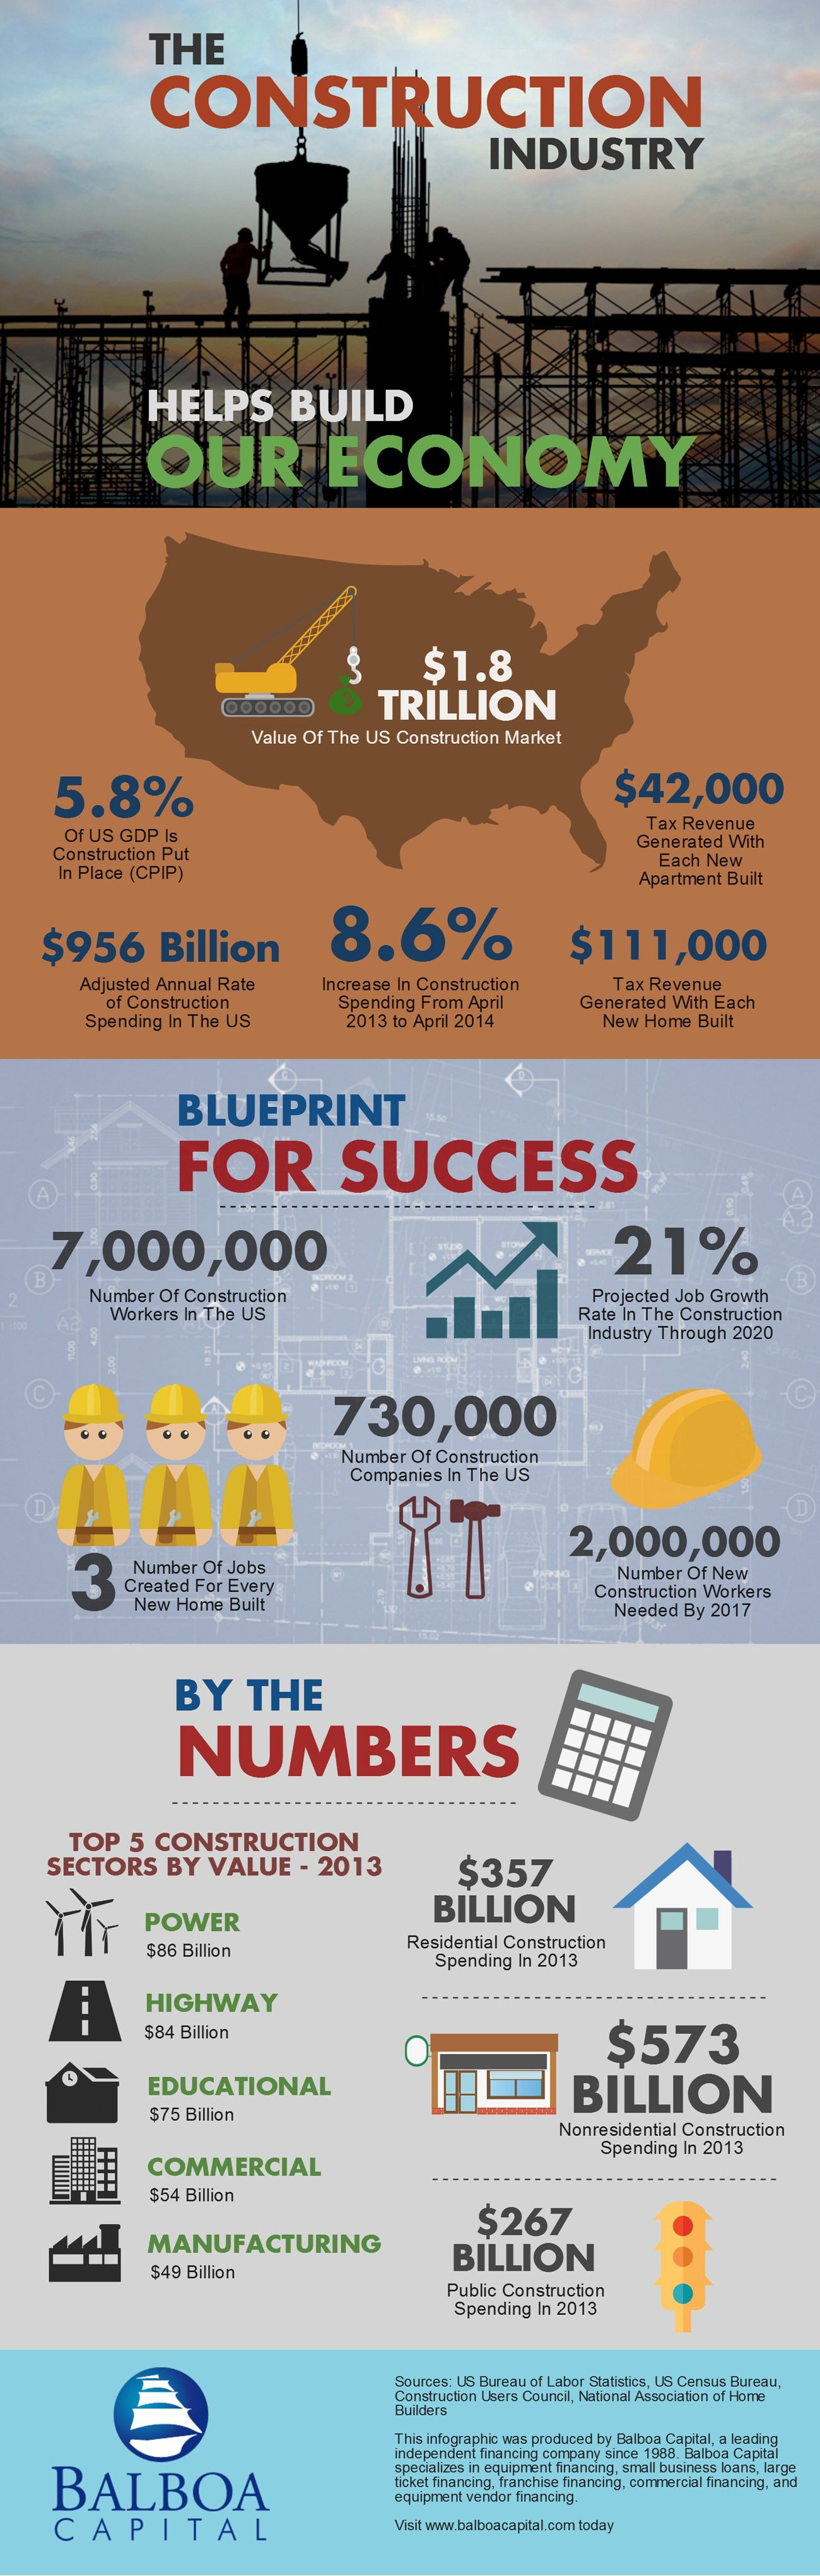 Construction Industry Helps Build Economy #